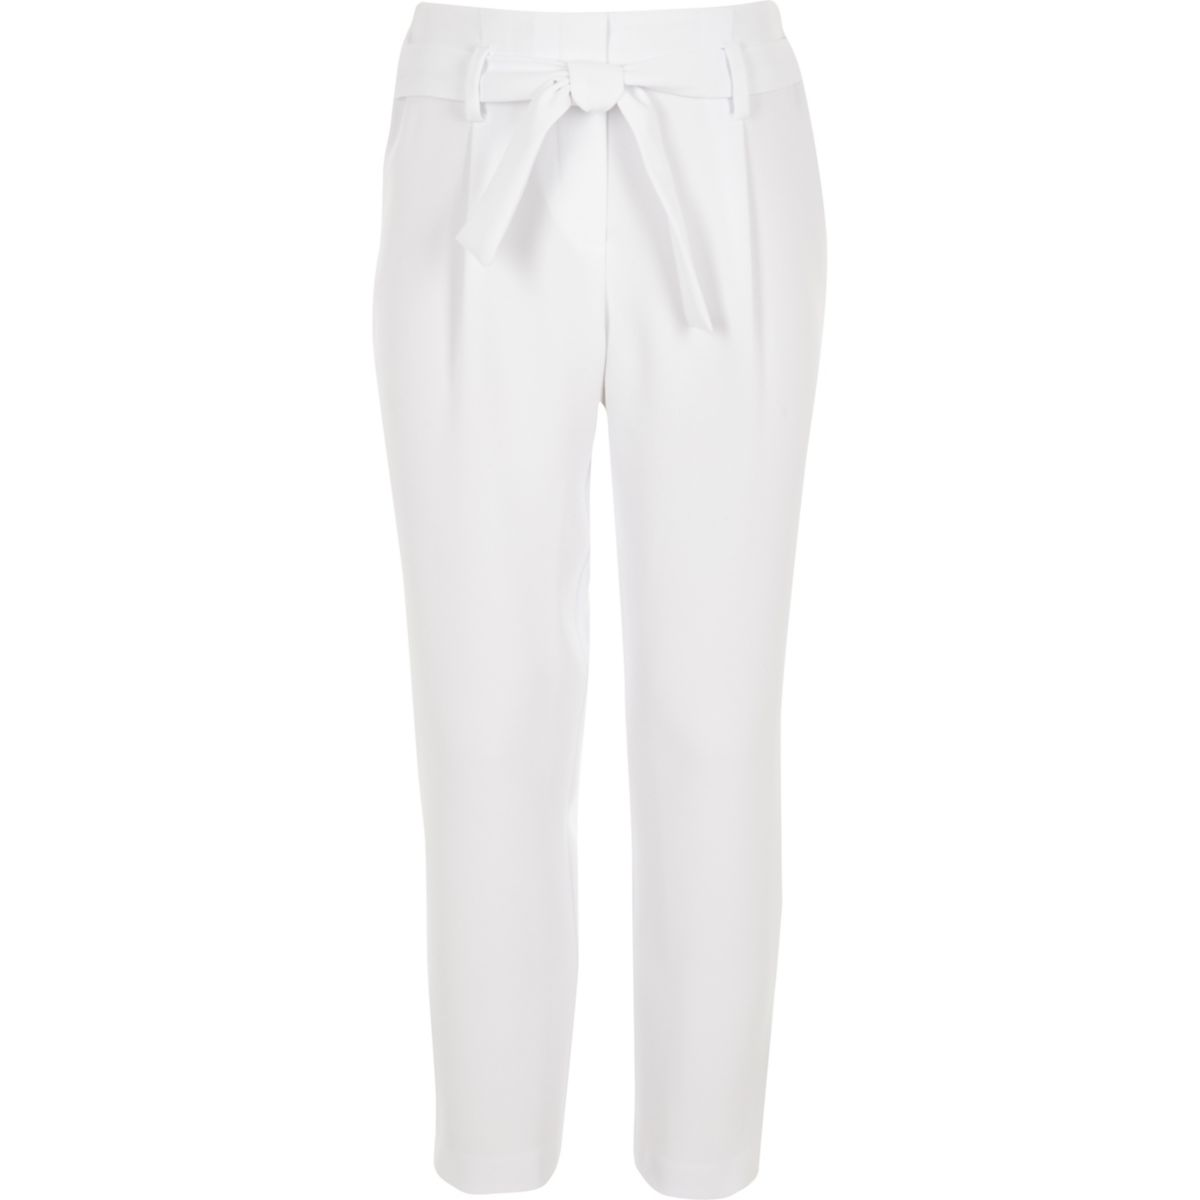 Girls White Tapered Tie Waist Trousers by River Island